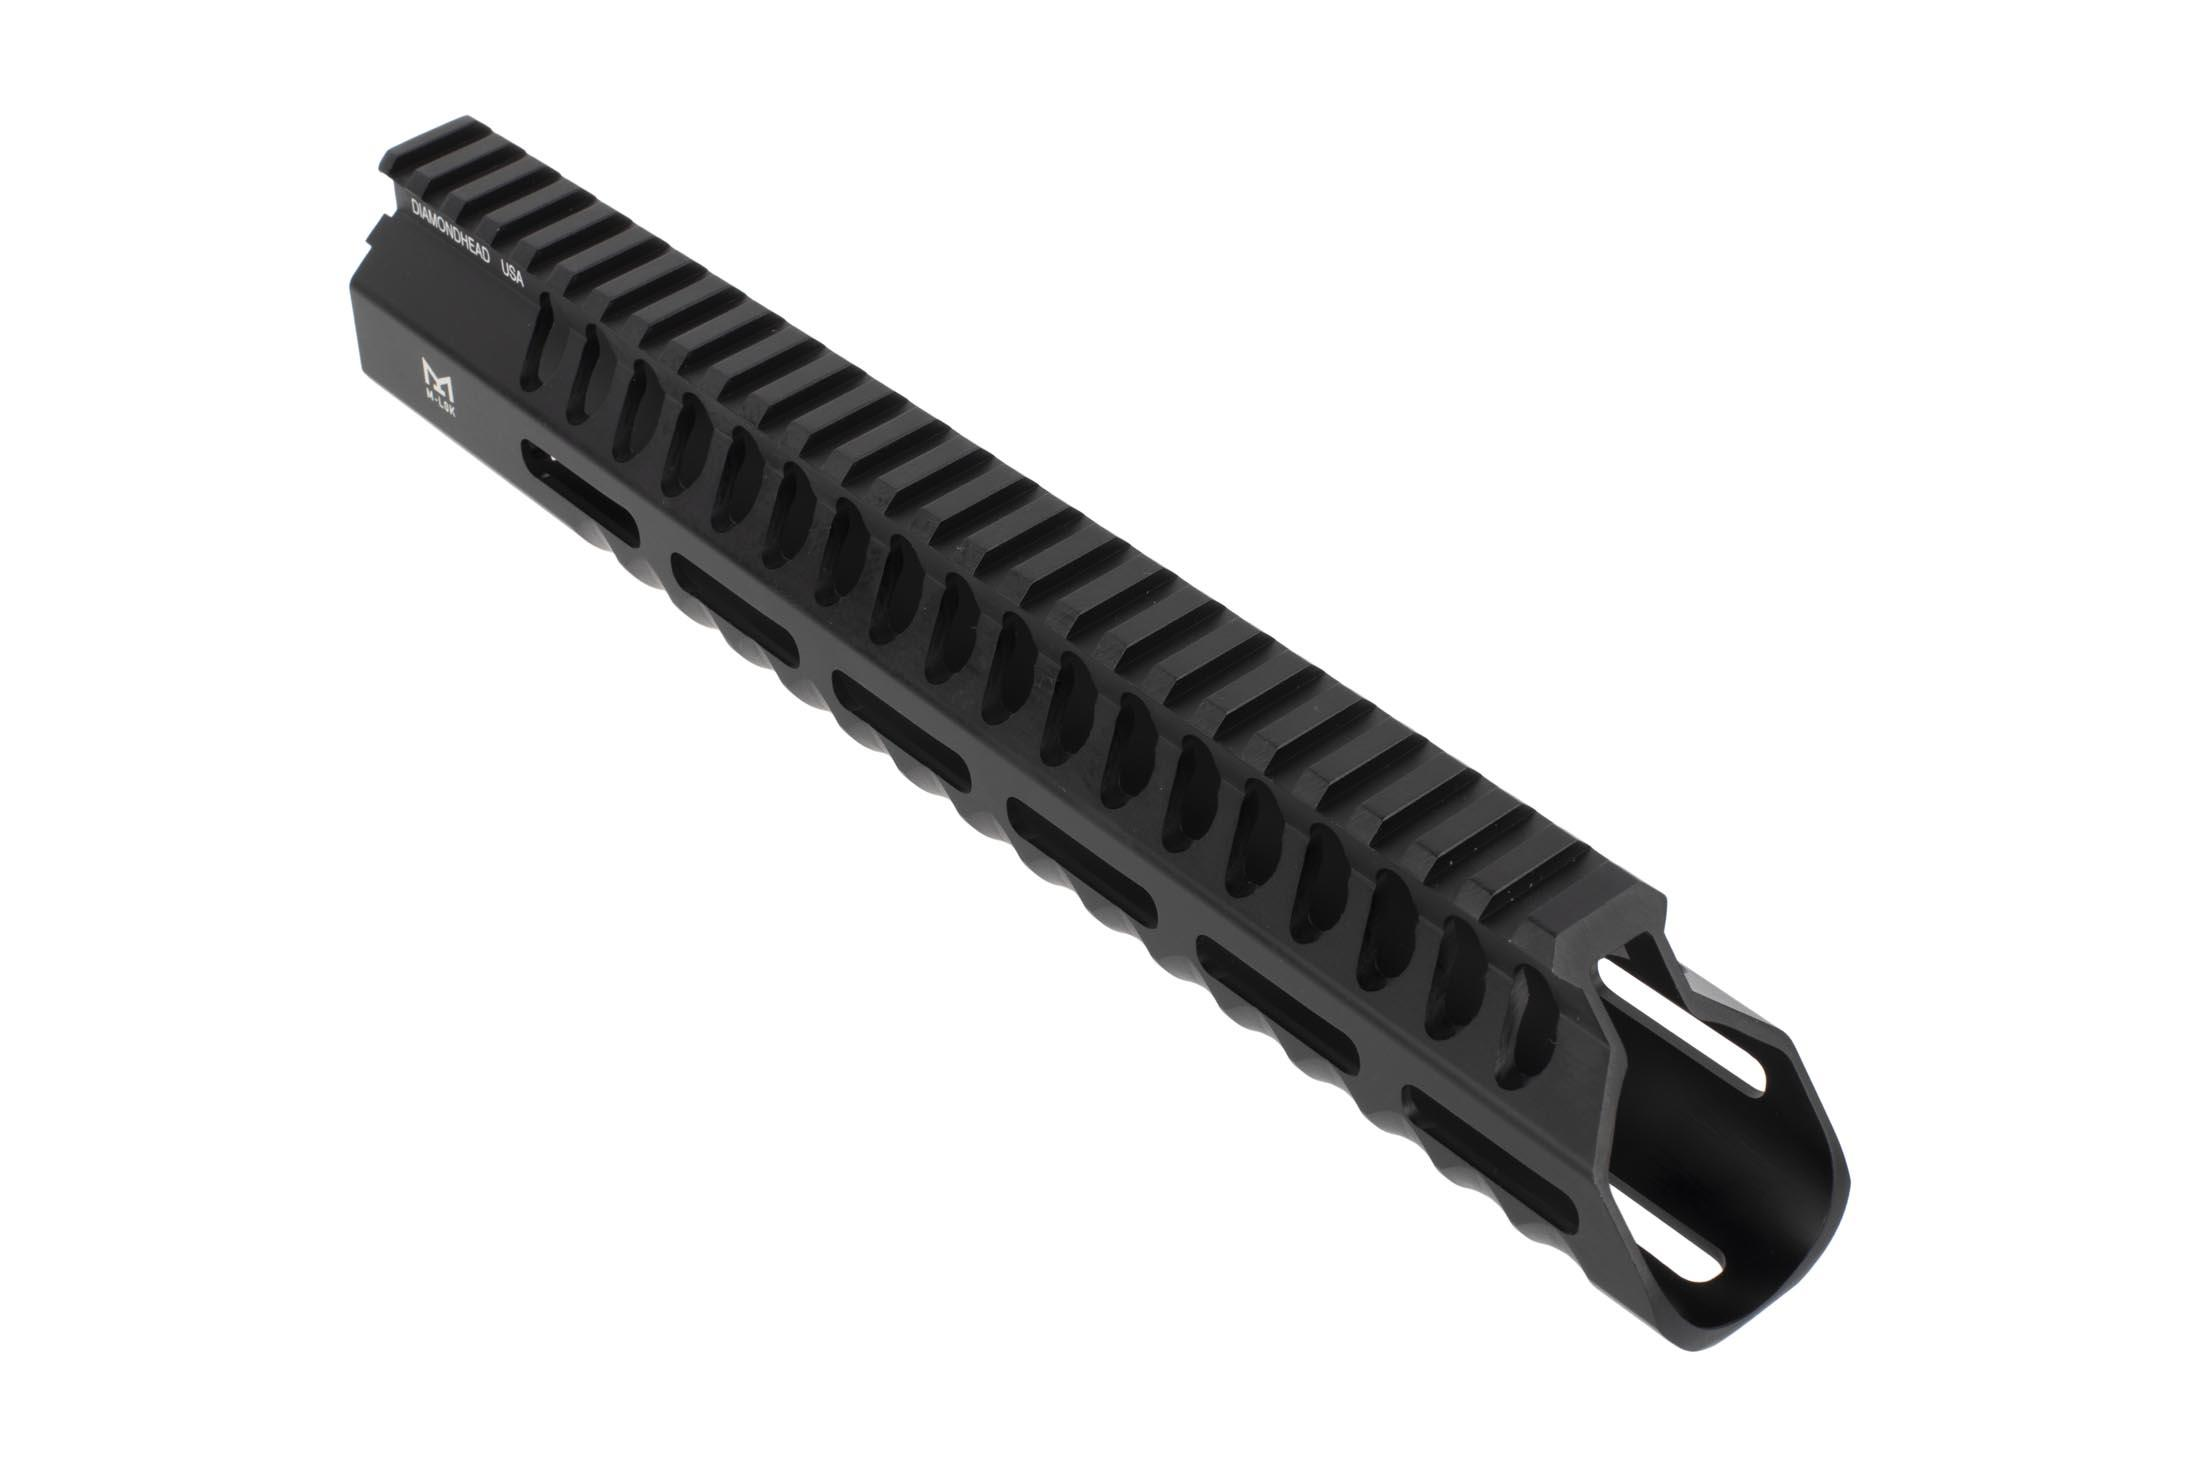 Diamondhead VRS T Gen 3 M-LOK handguard for the AR-15 is 10.25 inches of ergonomic free float rail with black anodized finish